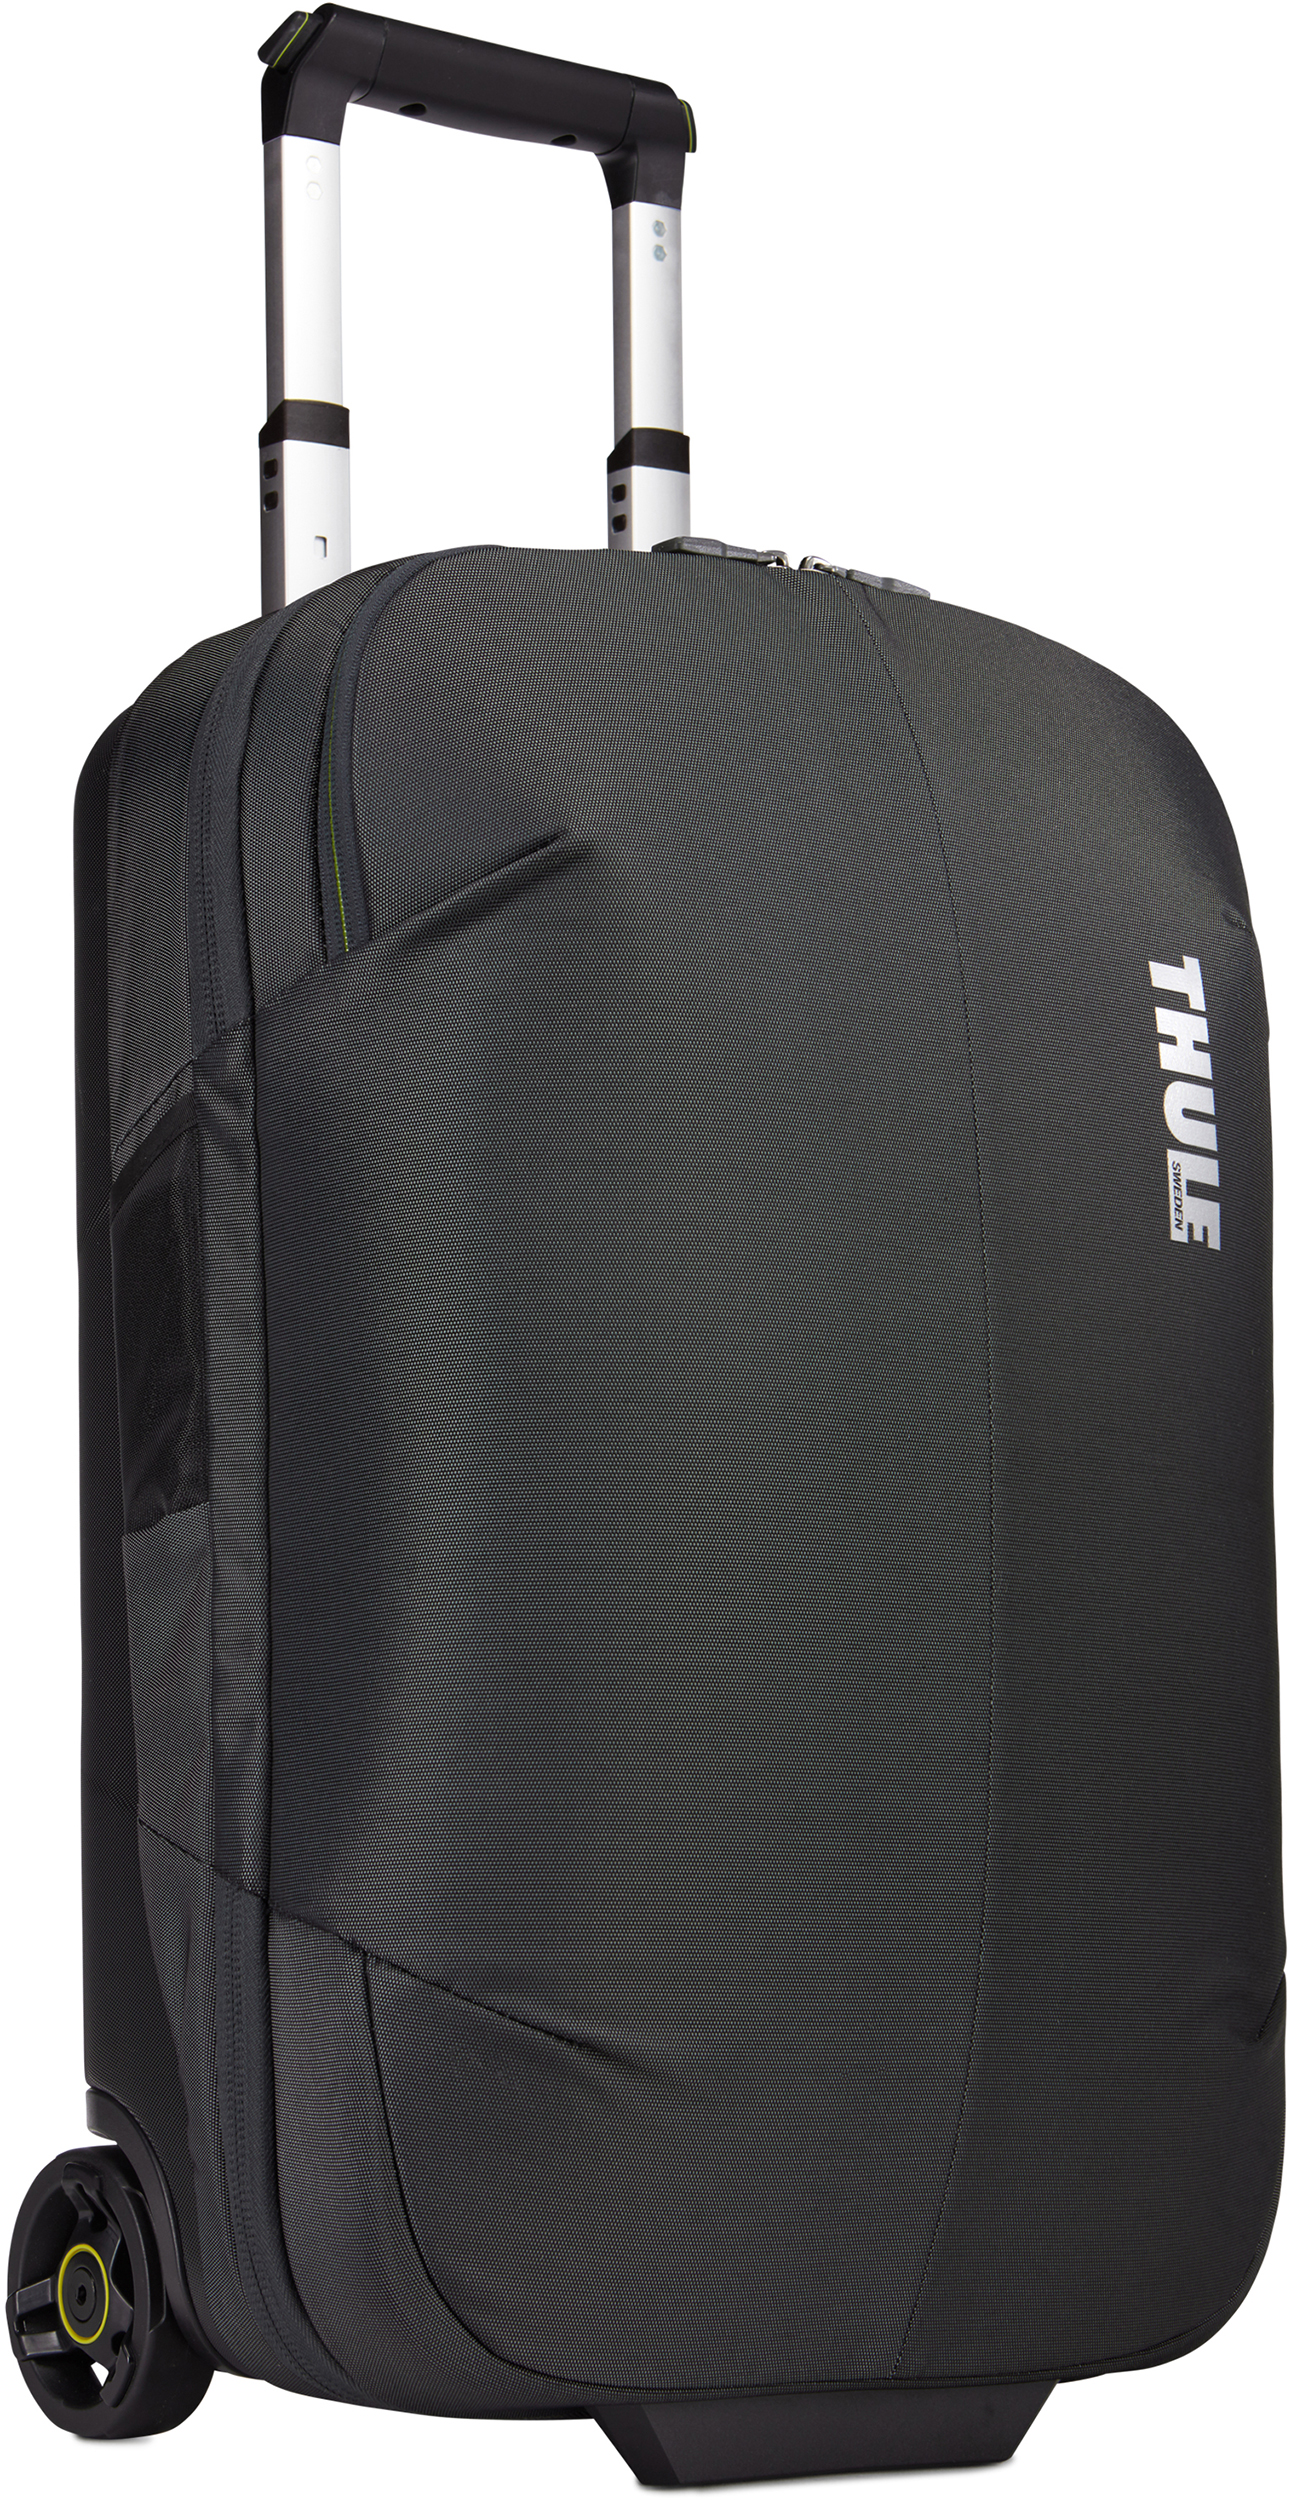 dee194a69286 Packs and bags